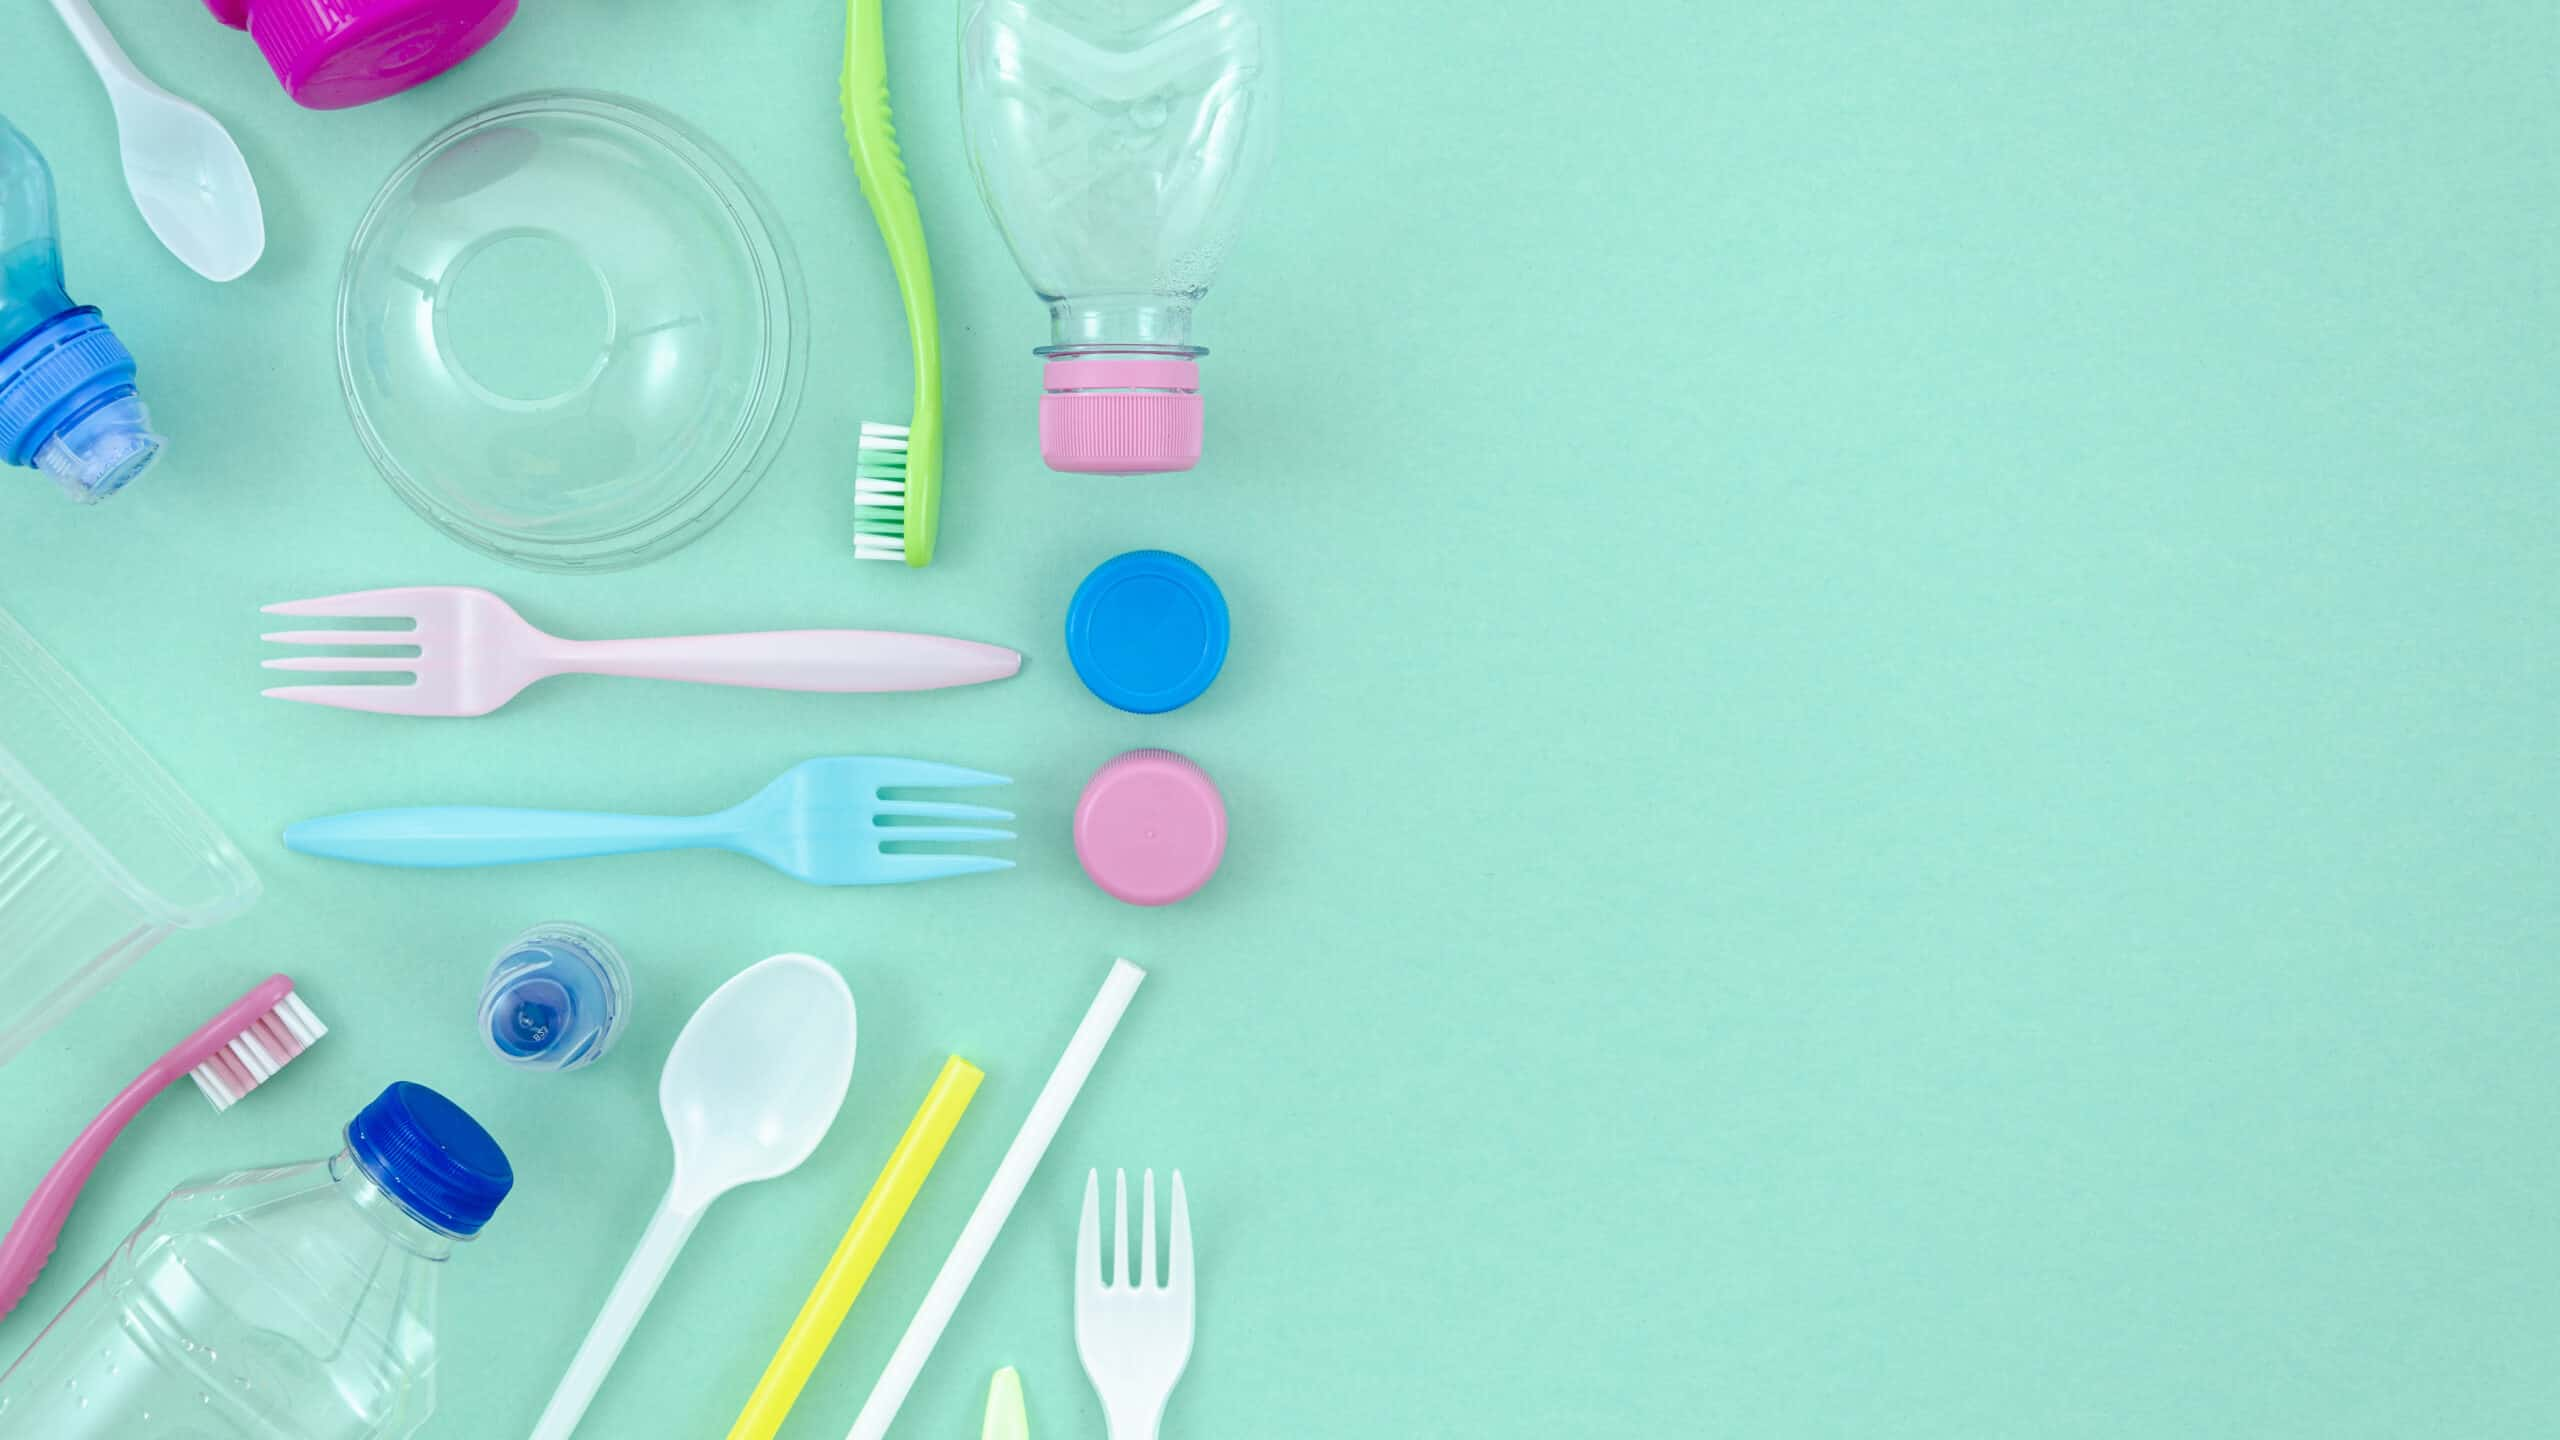 colorful-plastic-tableware-turquoise-background